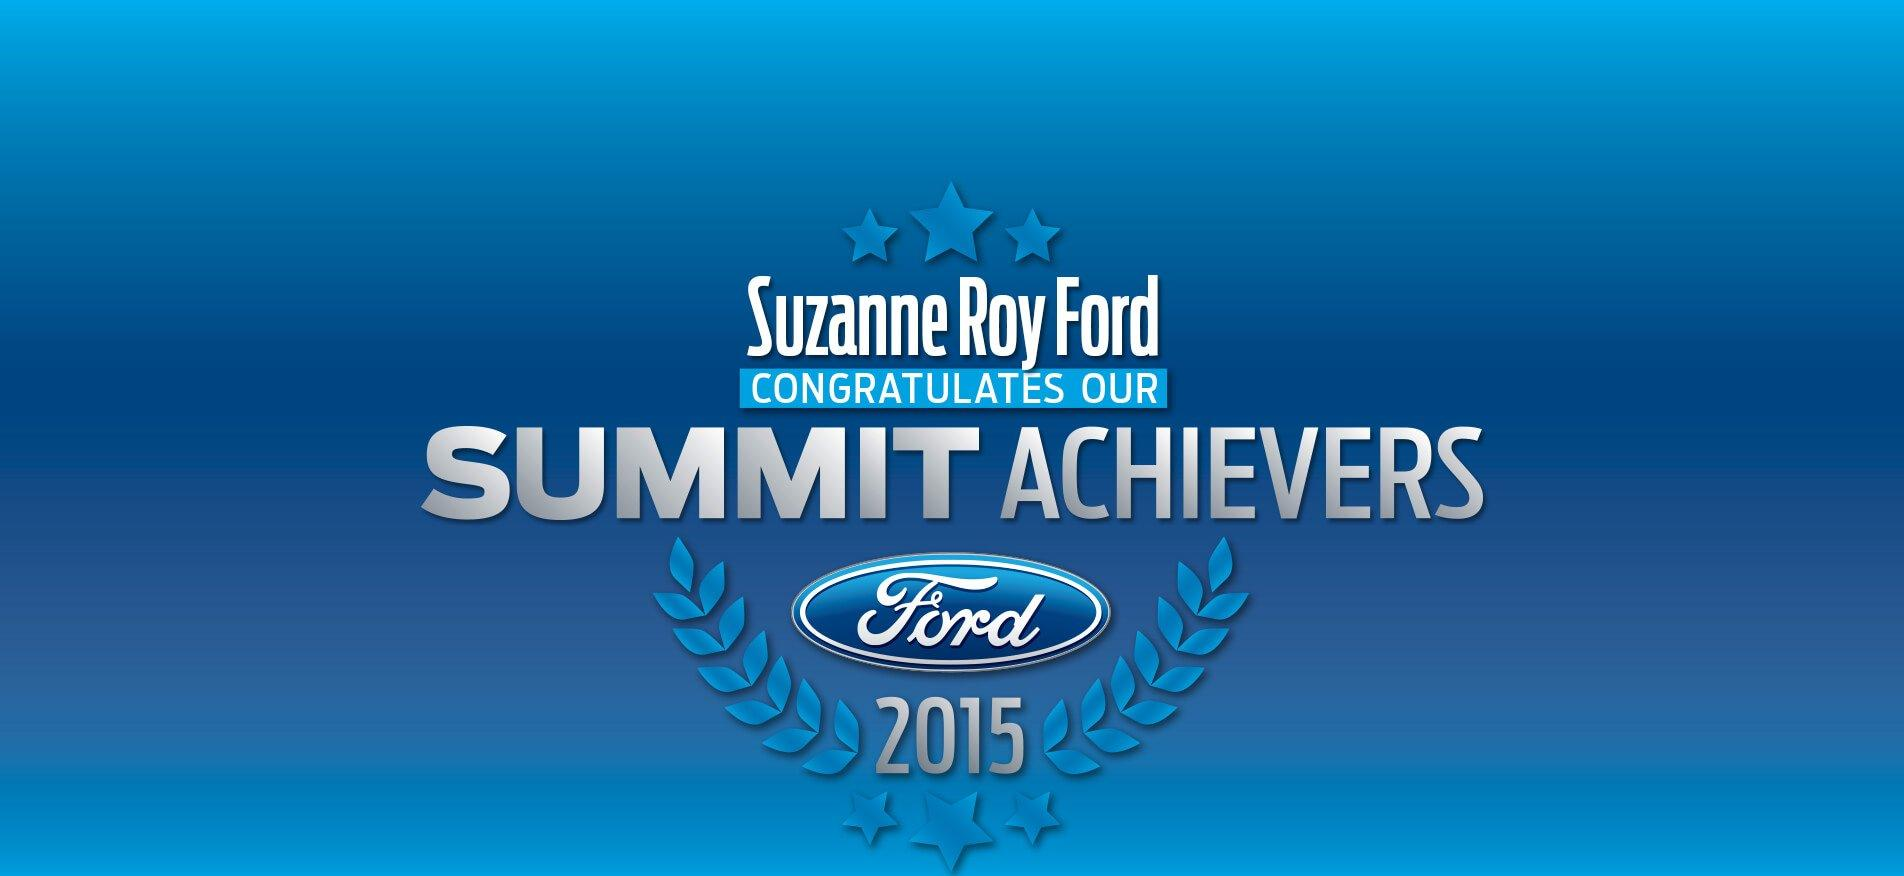 Summit Achievers